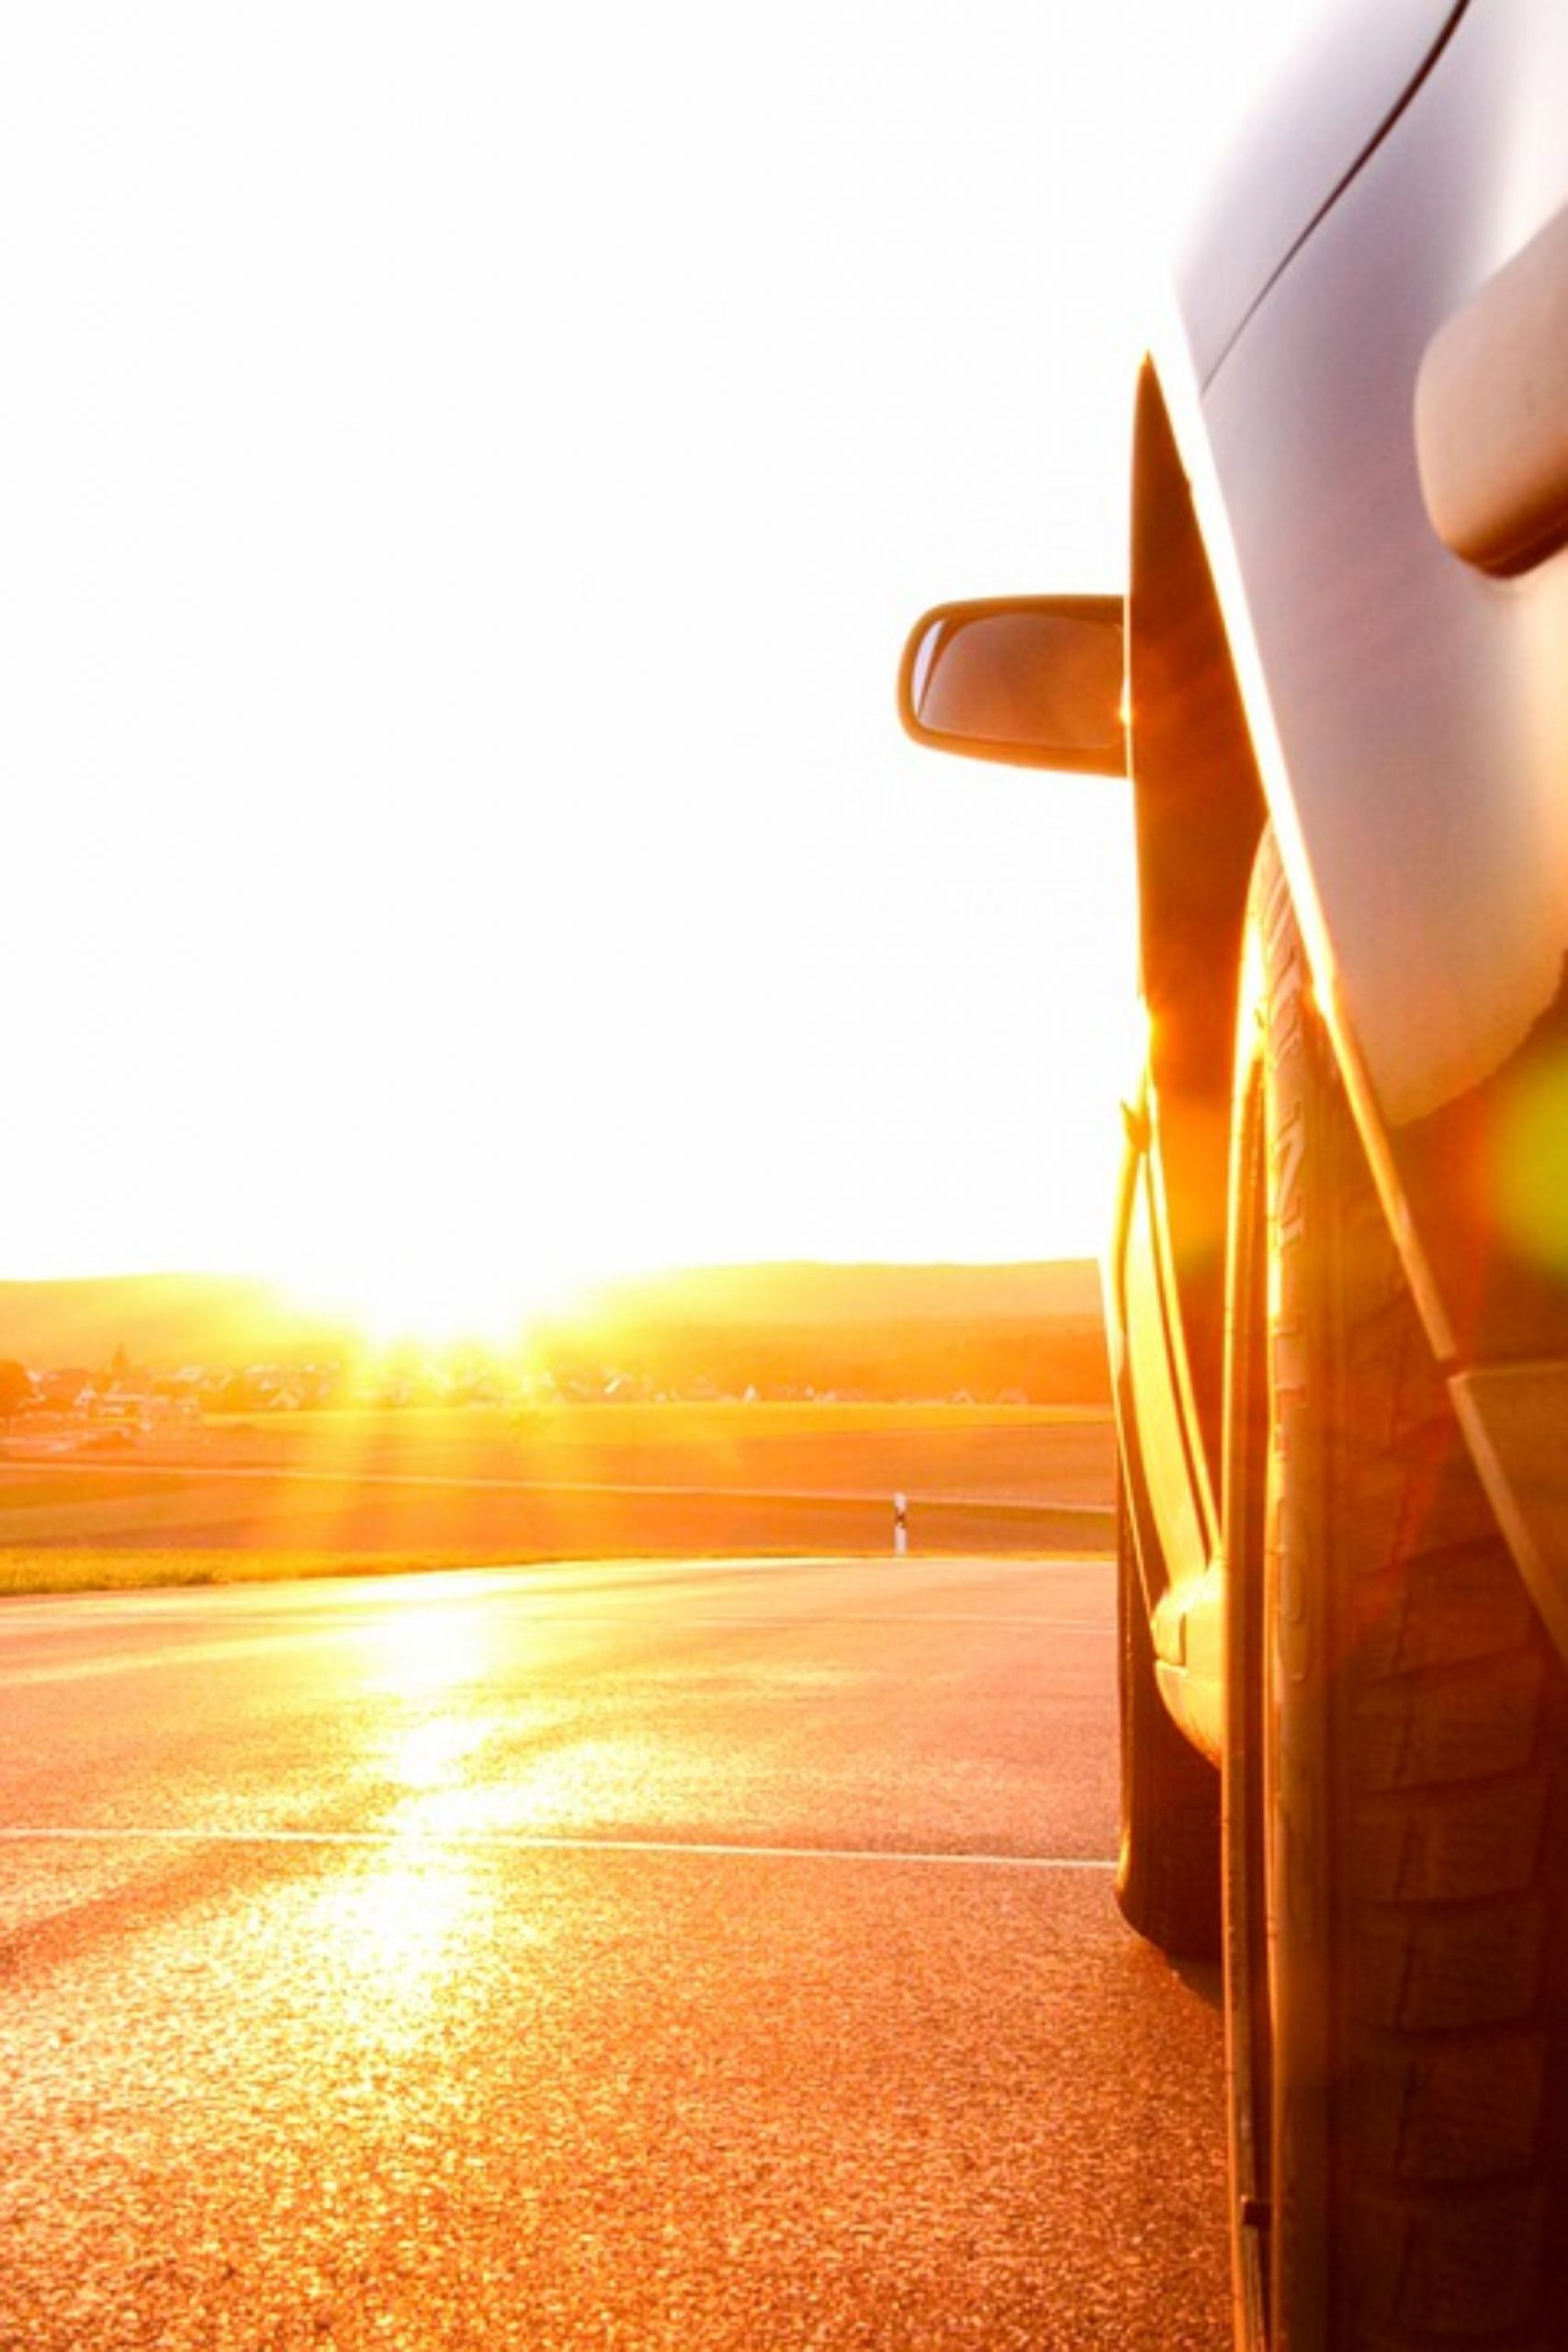 Stolen wheels: see in what situation auto insurance can cover the loss